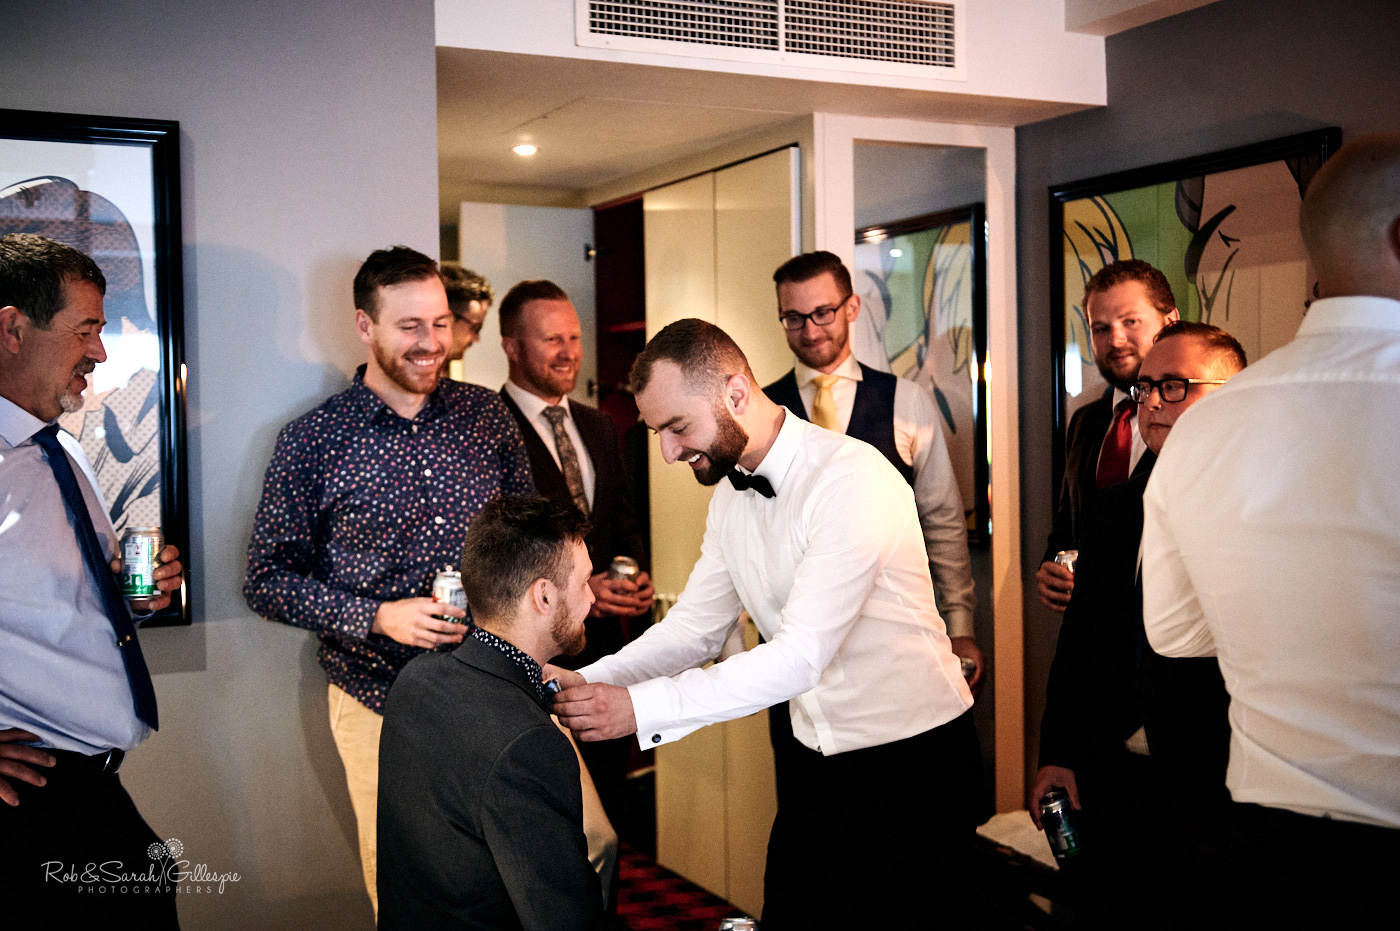 Groom prepares for wedding with friends and family in Malmaison Birmingham